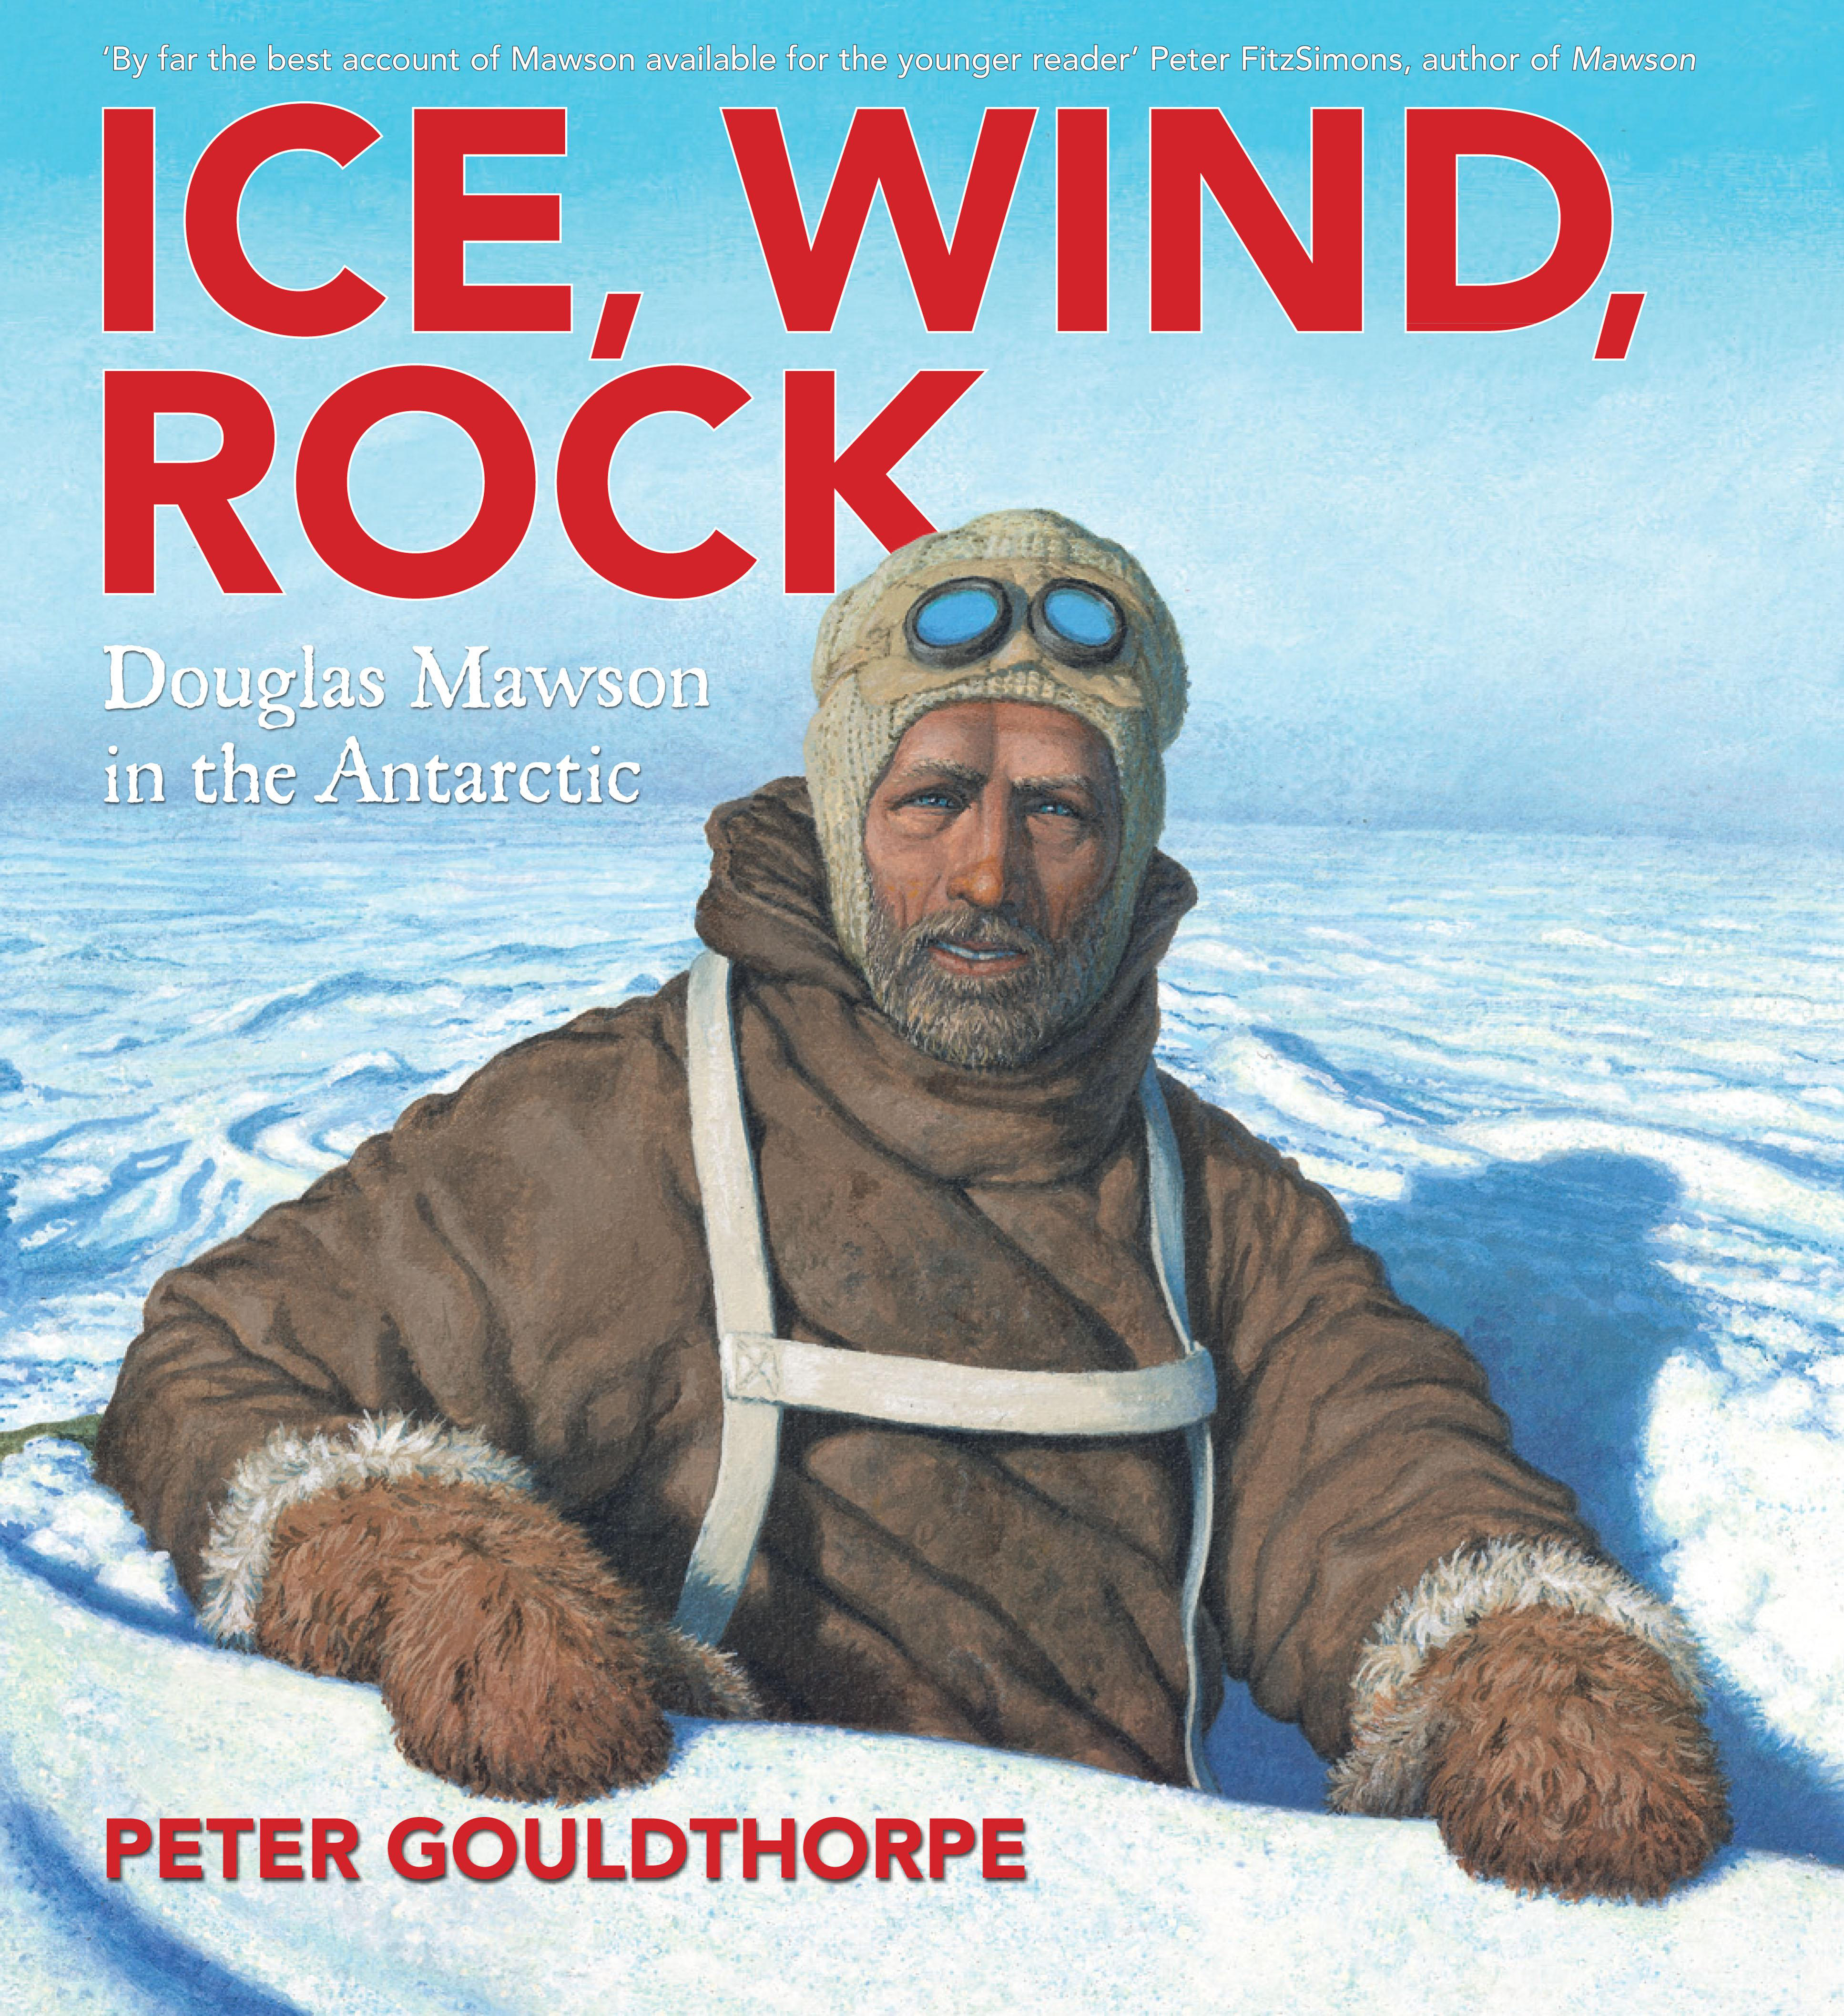 Ice, Wind, Rock: Douglas Mawson in the Antarctic by Peter Gouldthorpe, ISBN: 9780734411556